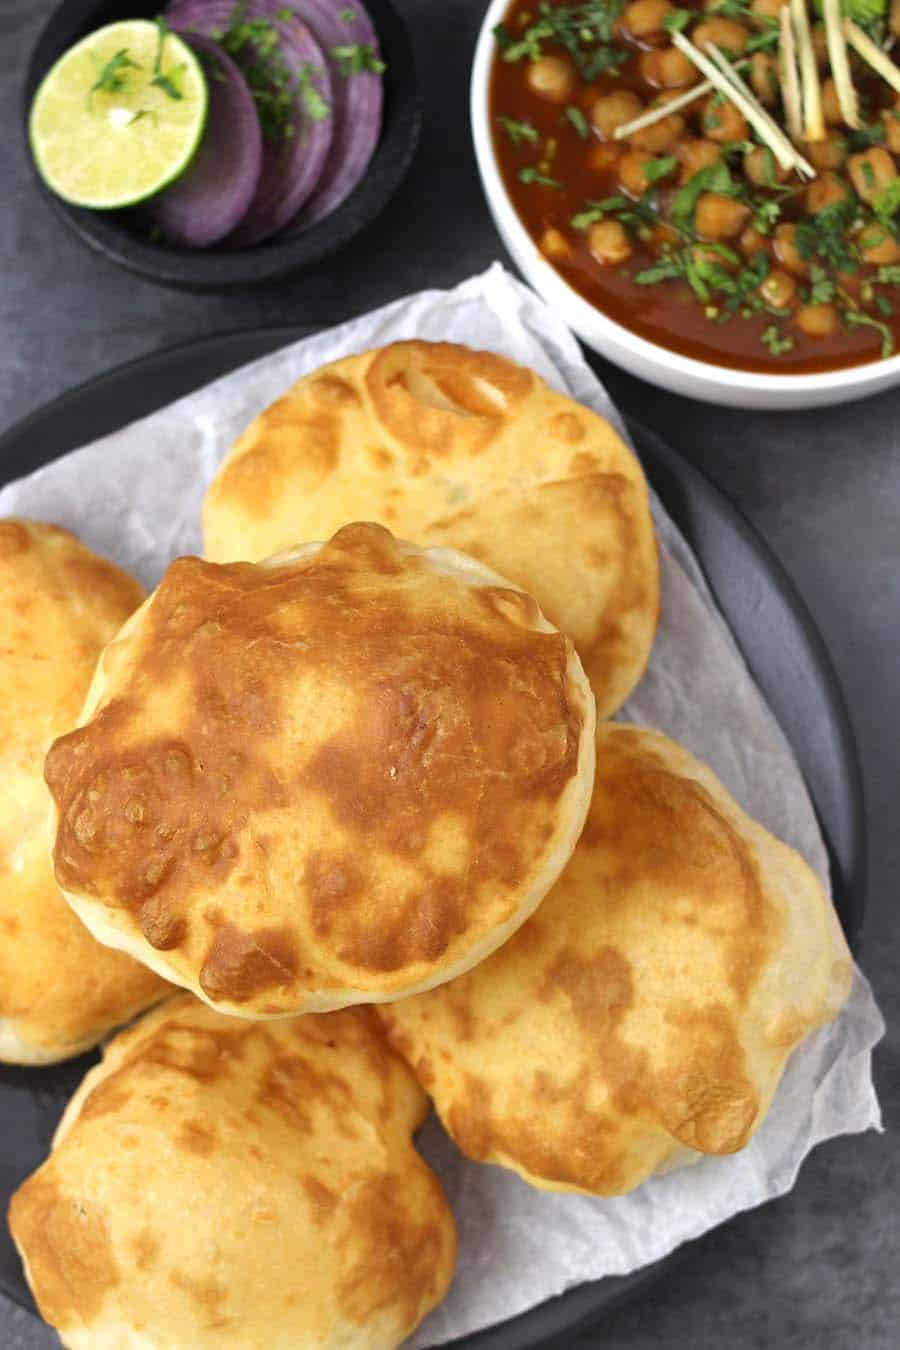 How to make bhature crispy and chewy, easy recipes for breakfast or vegetarian meal